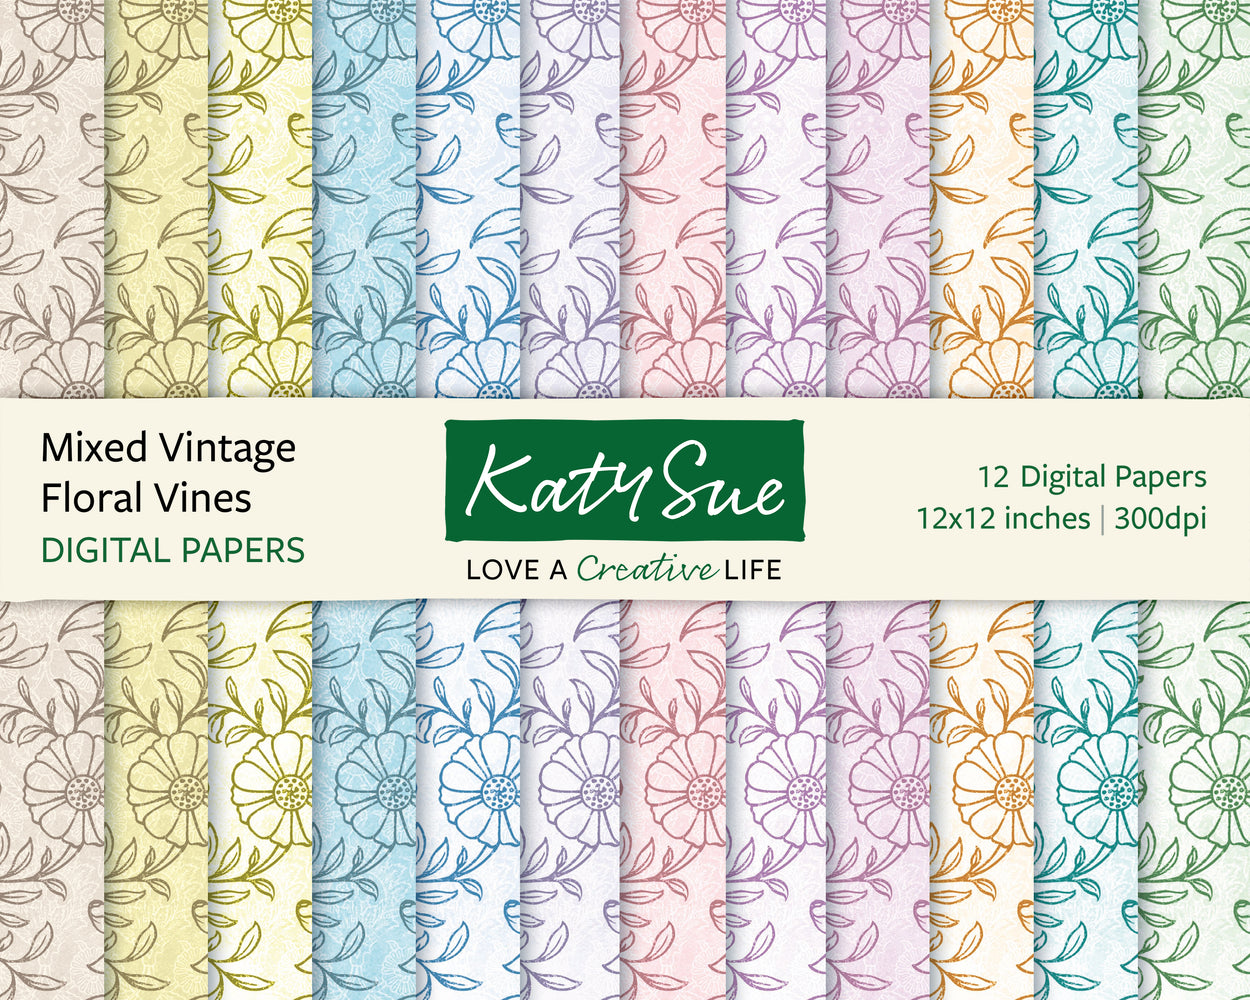 Mixed Vintage Floral Vines | 12x12 Digital Papers